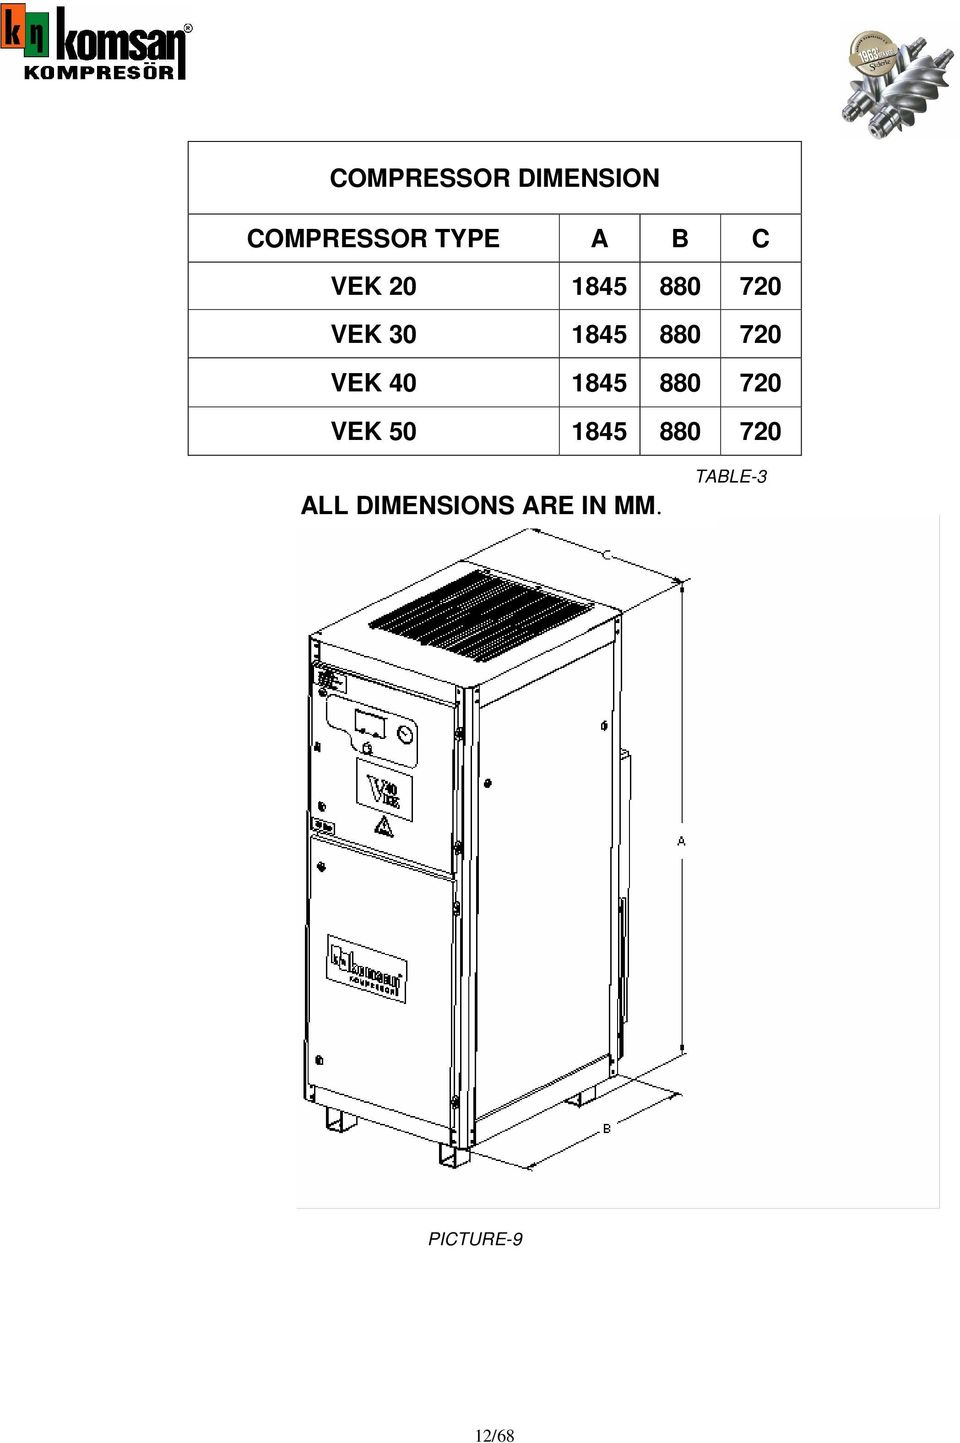 Vek Screw Compressor Pdf Volvo 960 1994 Instrument Cluster Wiring Diagram And Ambient Temperature Guide 40 1845 880 720 50